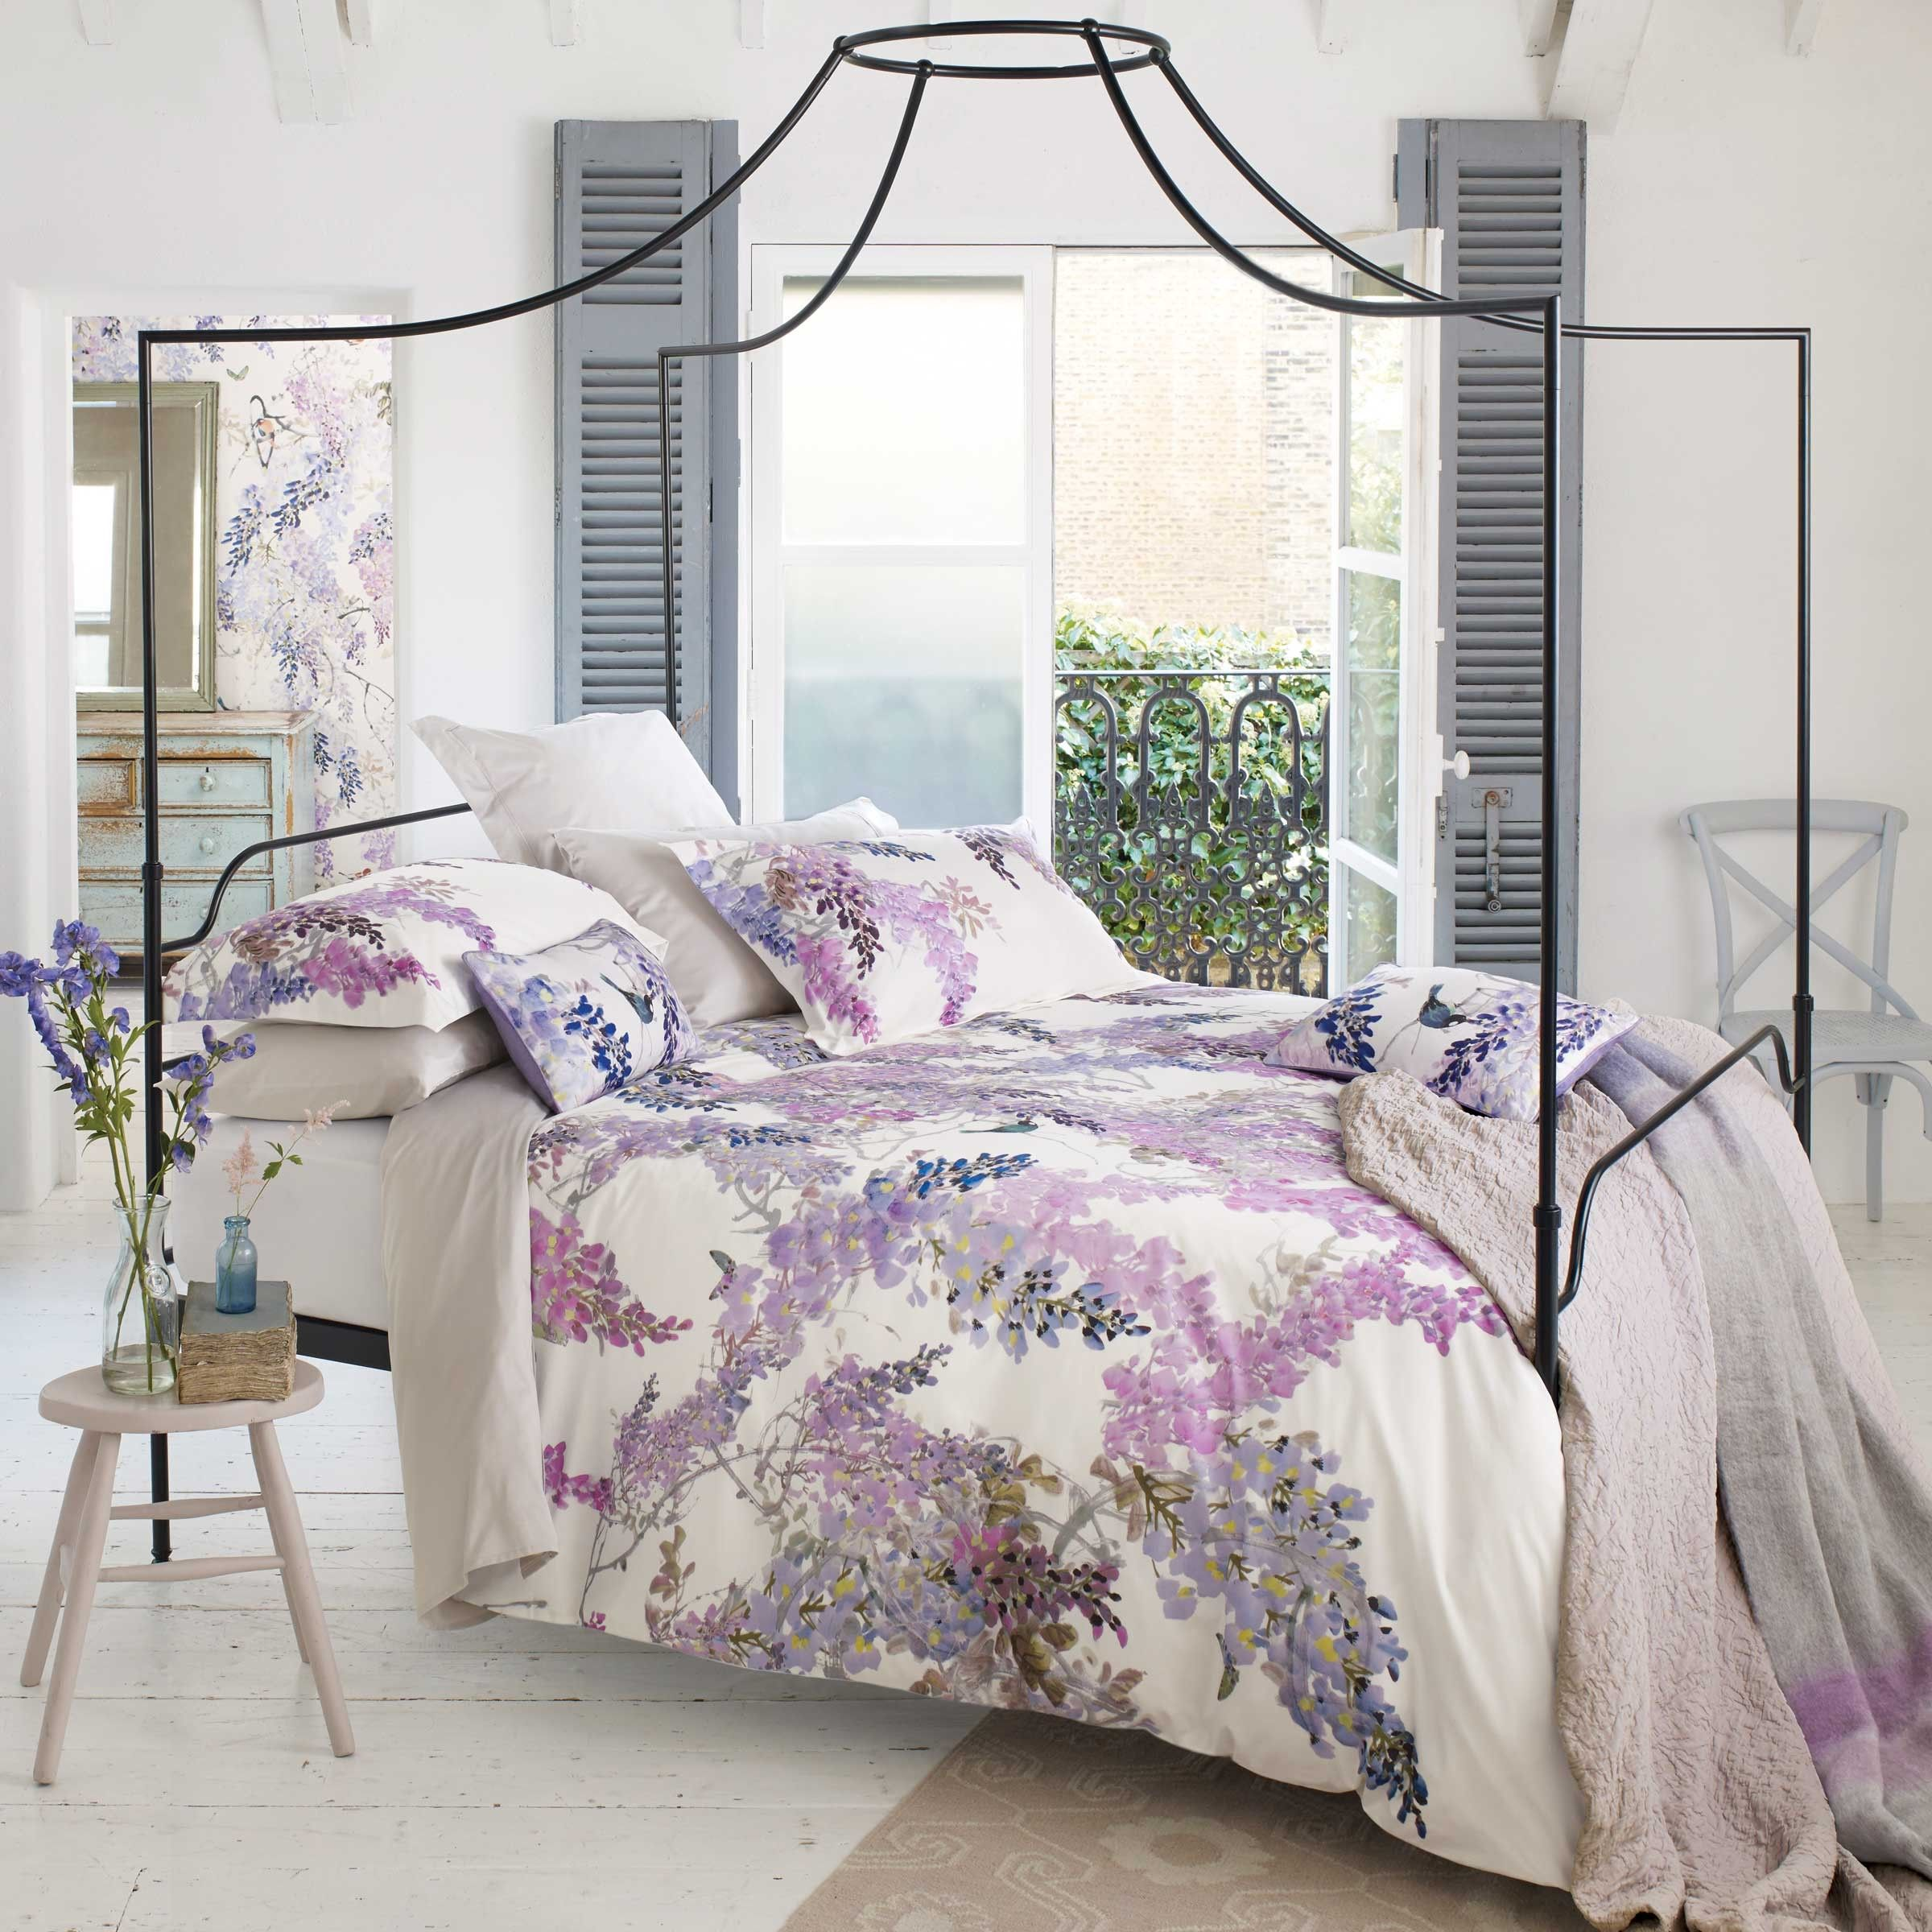 Lilac Floral Bedding Sanderson Wisteria Falls At Bedeck 1951 Lilac Bedding Bed Linens Luxury Luxury Bedding